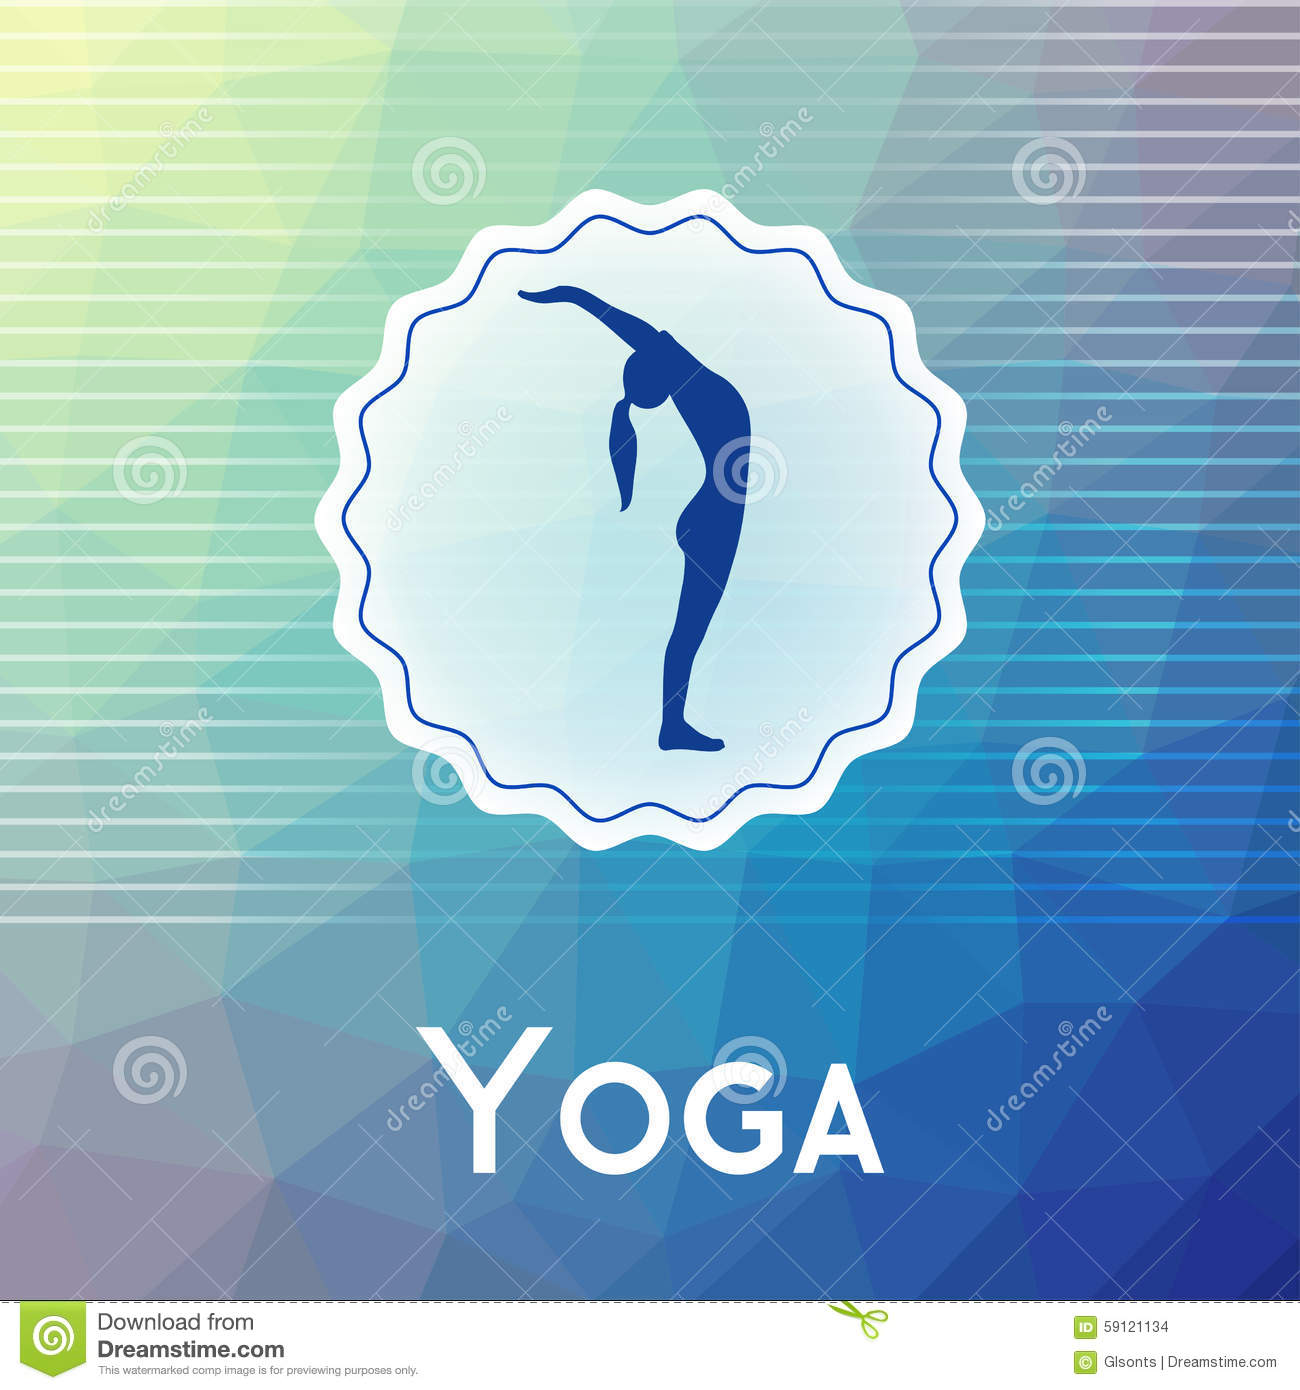 Vector Yoga Illustration Name Of Studio On A Modern Polygonal Background Exercises For Healthy Lifestyle Poster Template Class